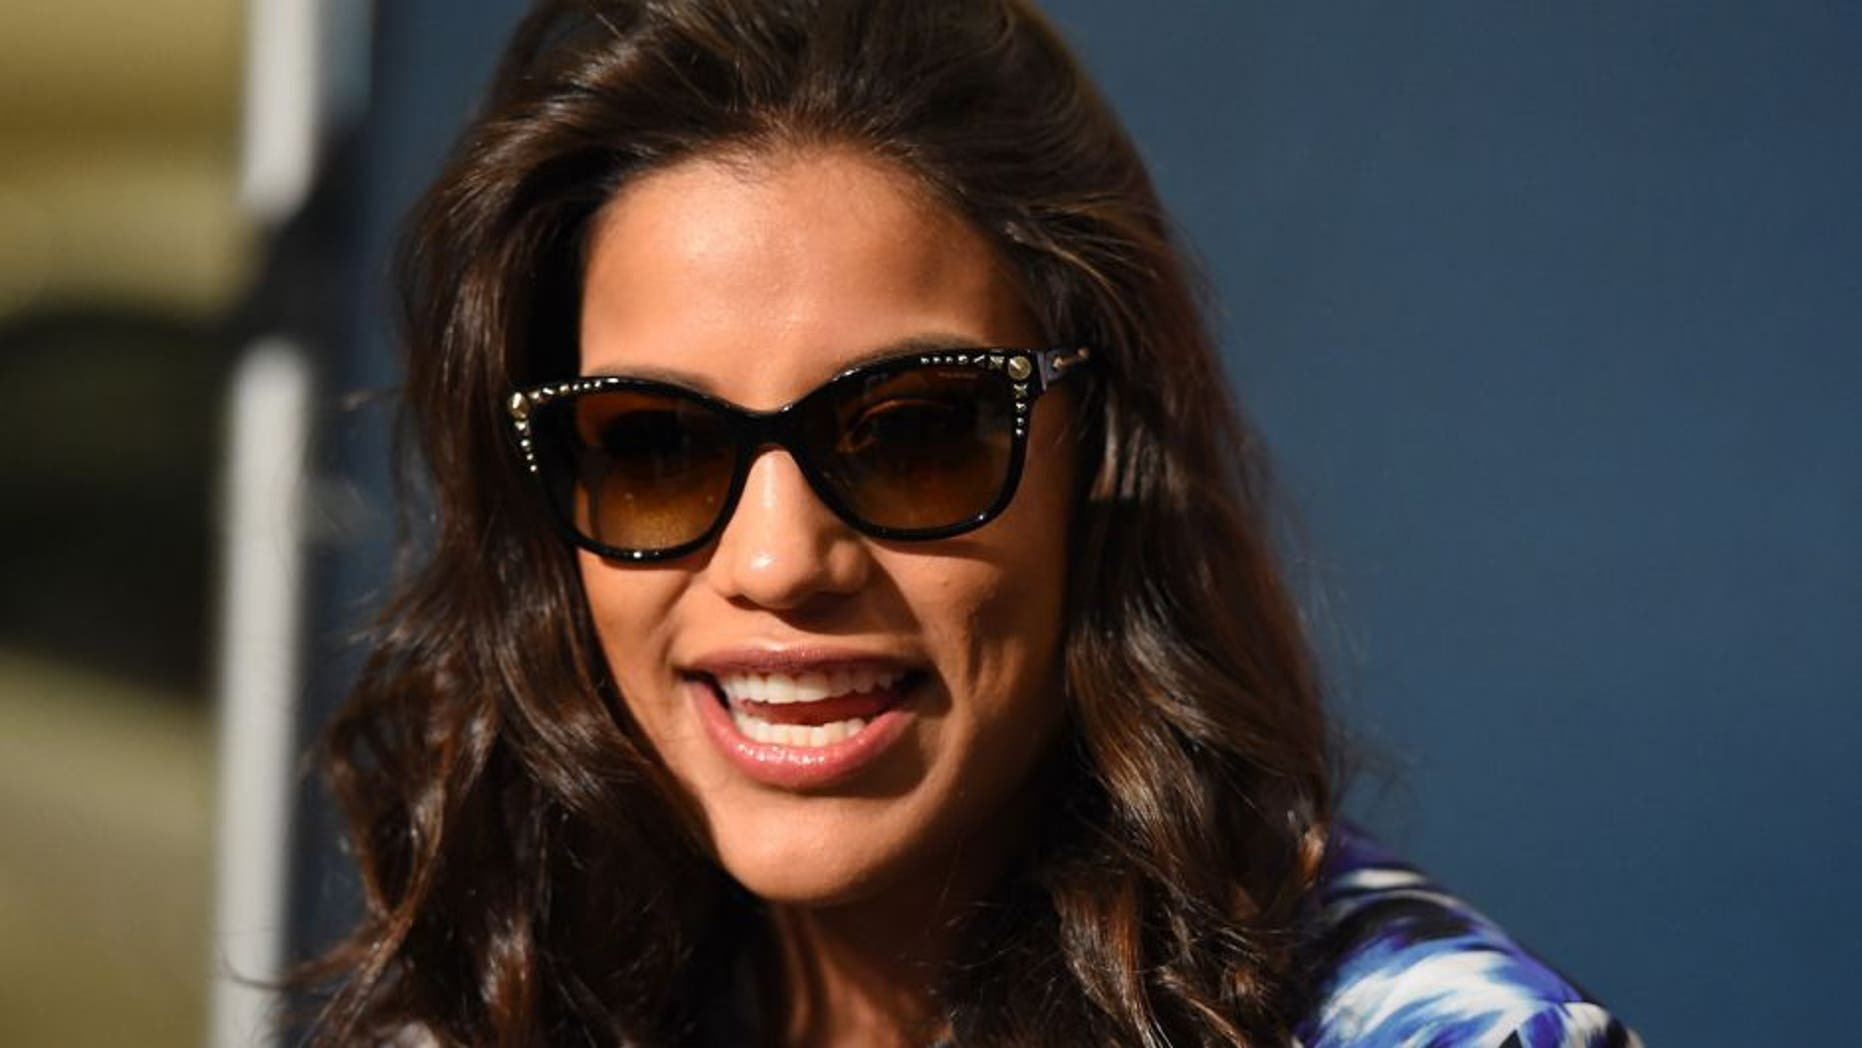 HOUSTON, TX - OCTOBER 01: Julianna Pena interacts with media during the UFC 192 Ultimate Media Day at the Toyota Center on October 1, 2015 in Houston, Texas. (Photo by Josh Hedges/Zuffa LLC/Zuffa LLC via Getty Images)